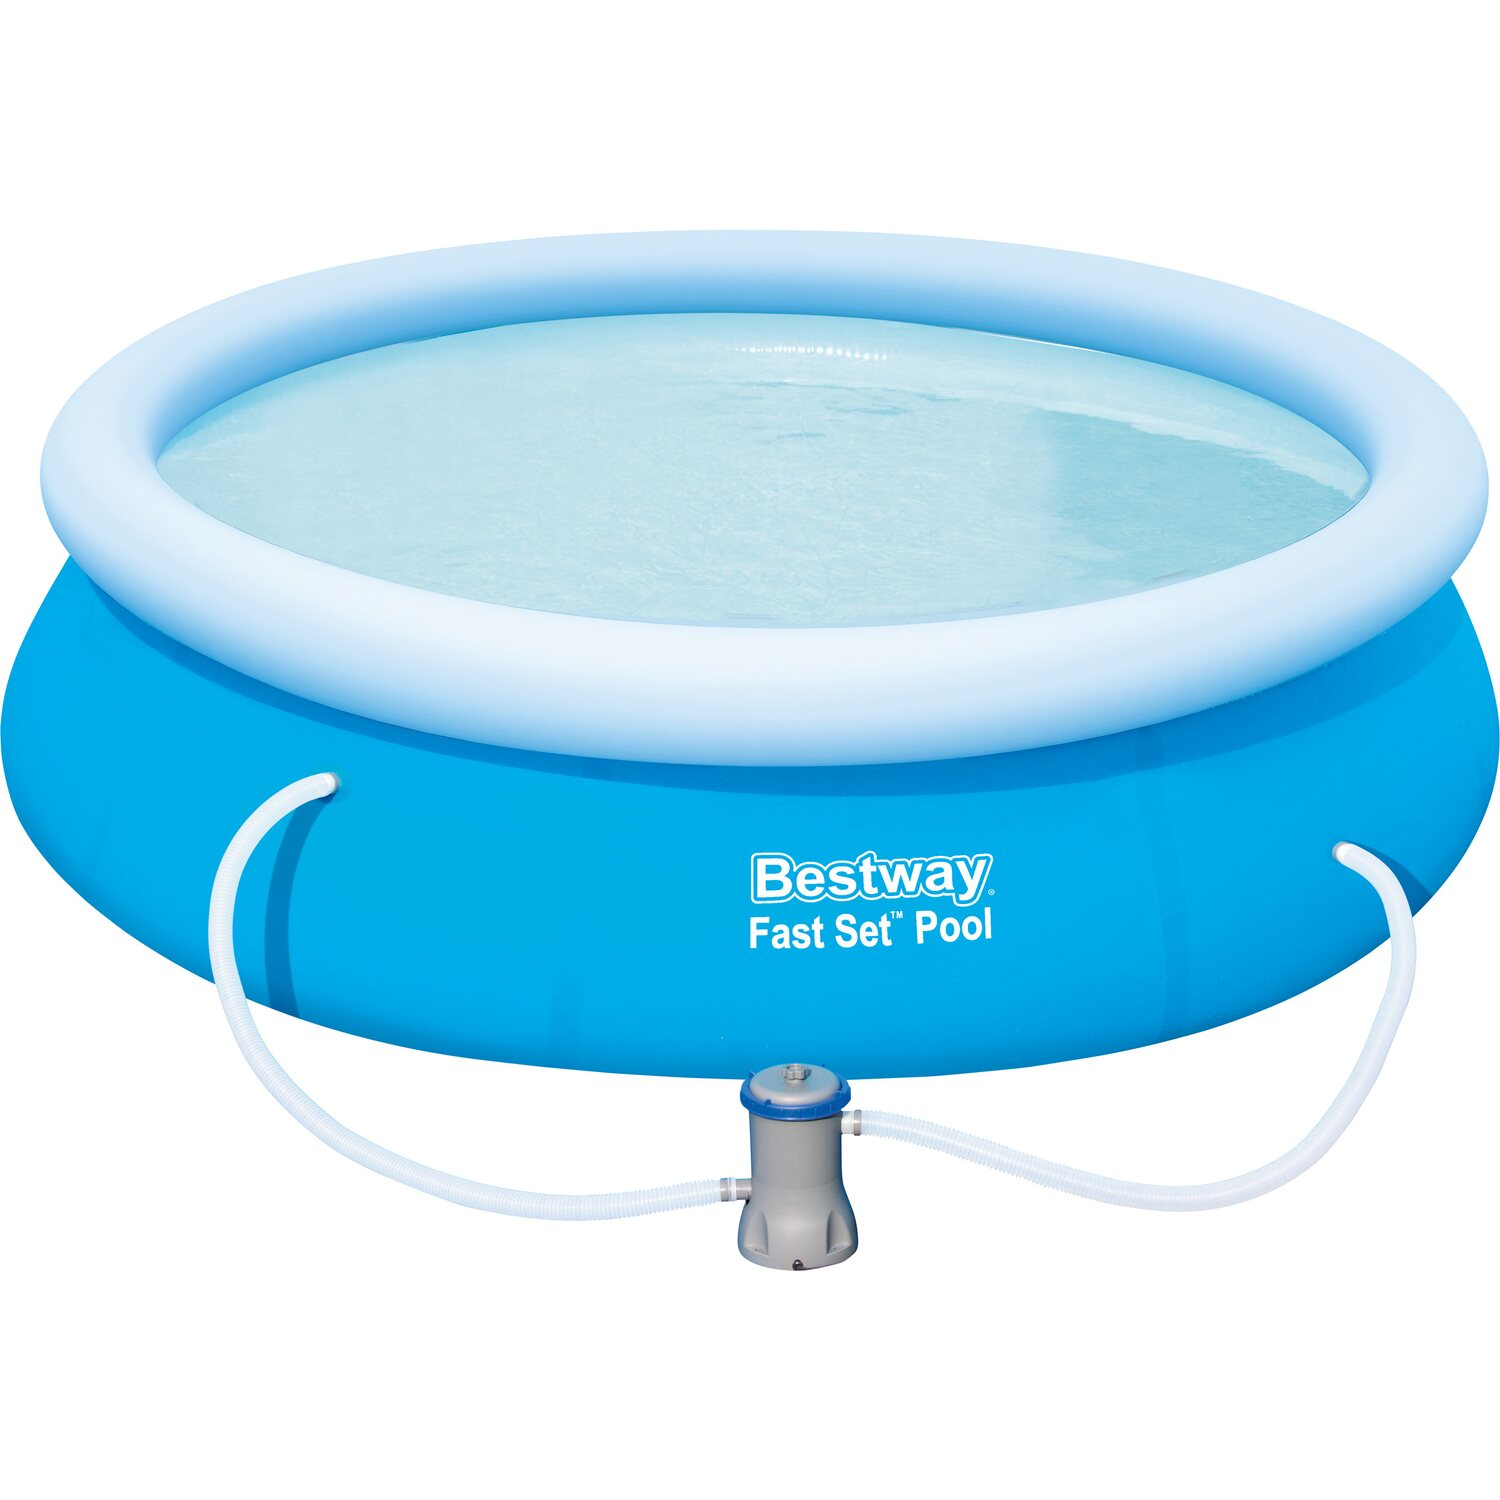 Bestway fast set pool preisvergleiche for Abdeckplane pool obi